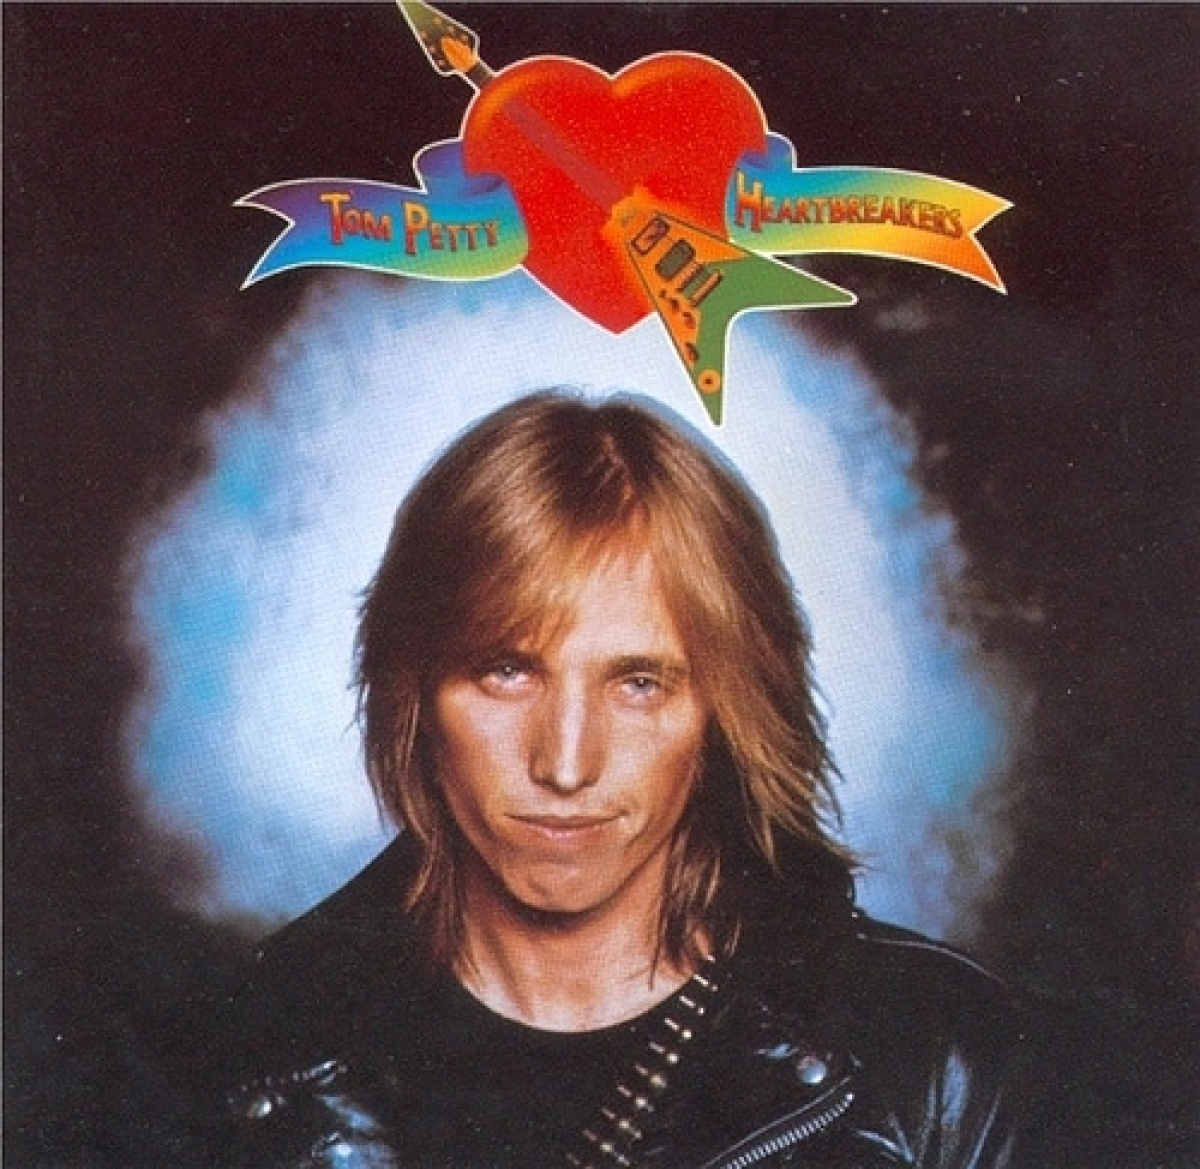 Register to Win - Tom Petty & the Heartbreakers